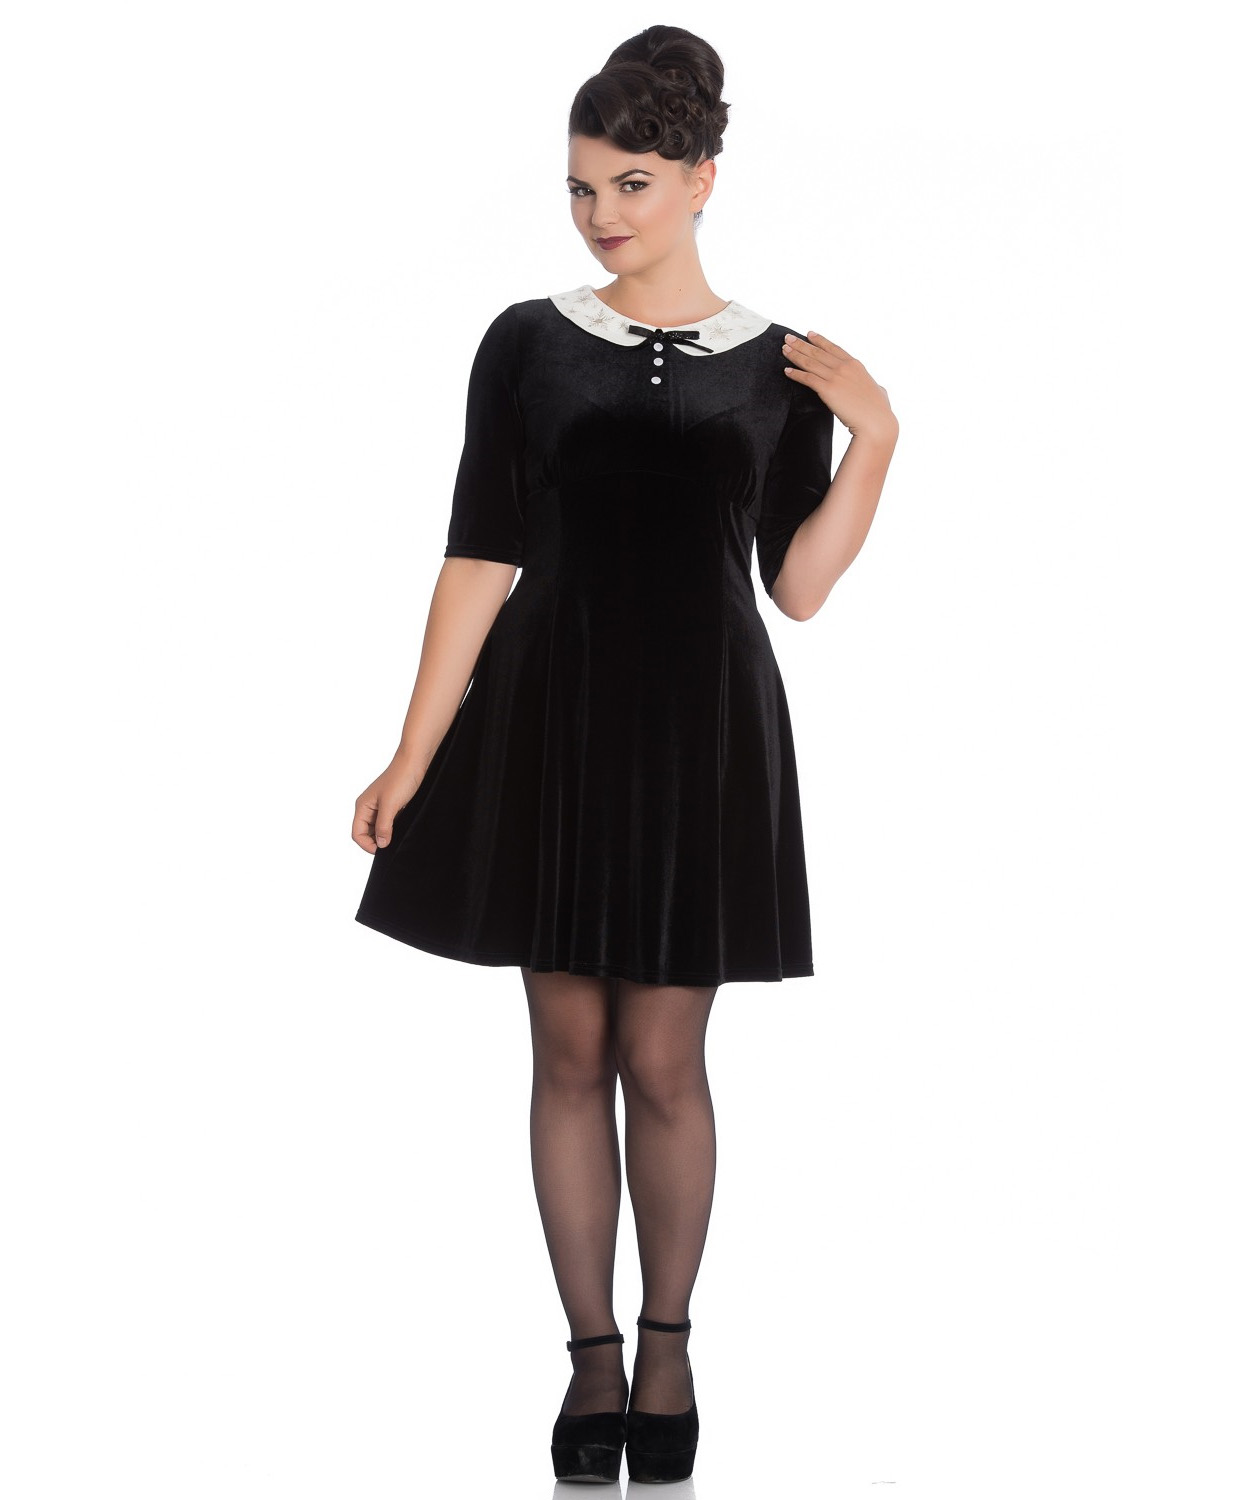 Hell-Bunny-Mini-Skater-Dress-Festive-Christmas-SNOWY-Black-Snowflakes-All-Sizes thumbnail 23